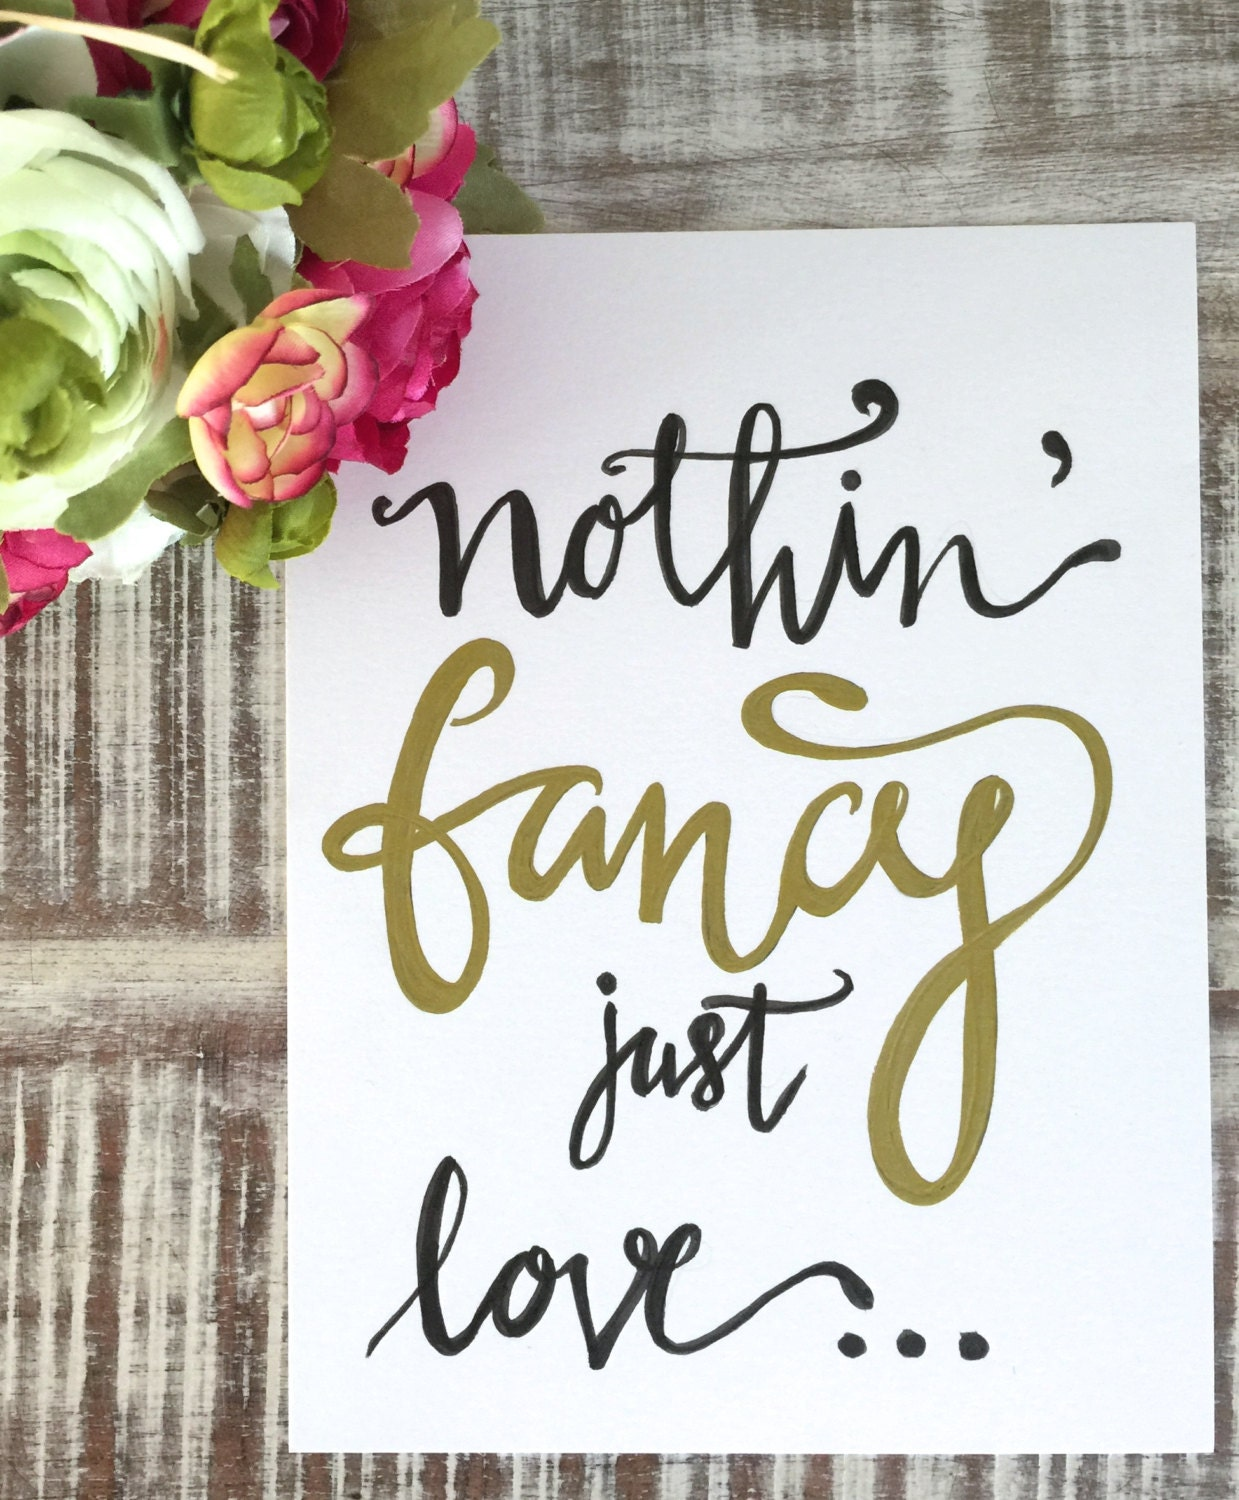 original hand lettered calligraphy art nothing fancy just love